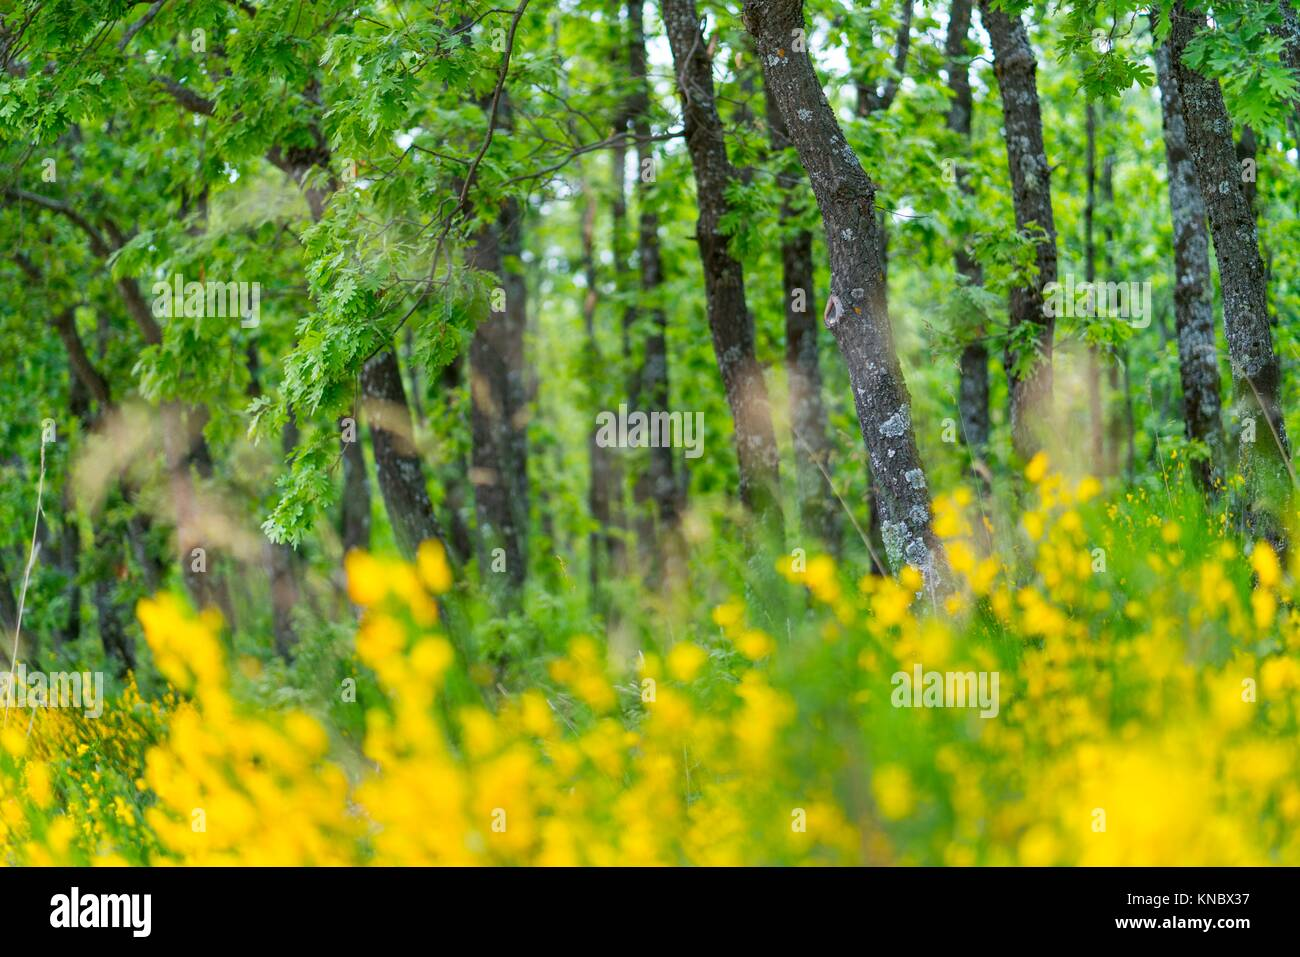 Pyrenean Oak forest and Common Broom, Sierra de Guadarrama, Madrid, Spain, Europe. Stock Photo